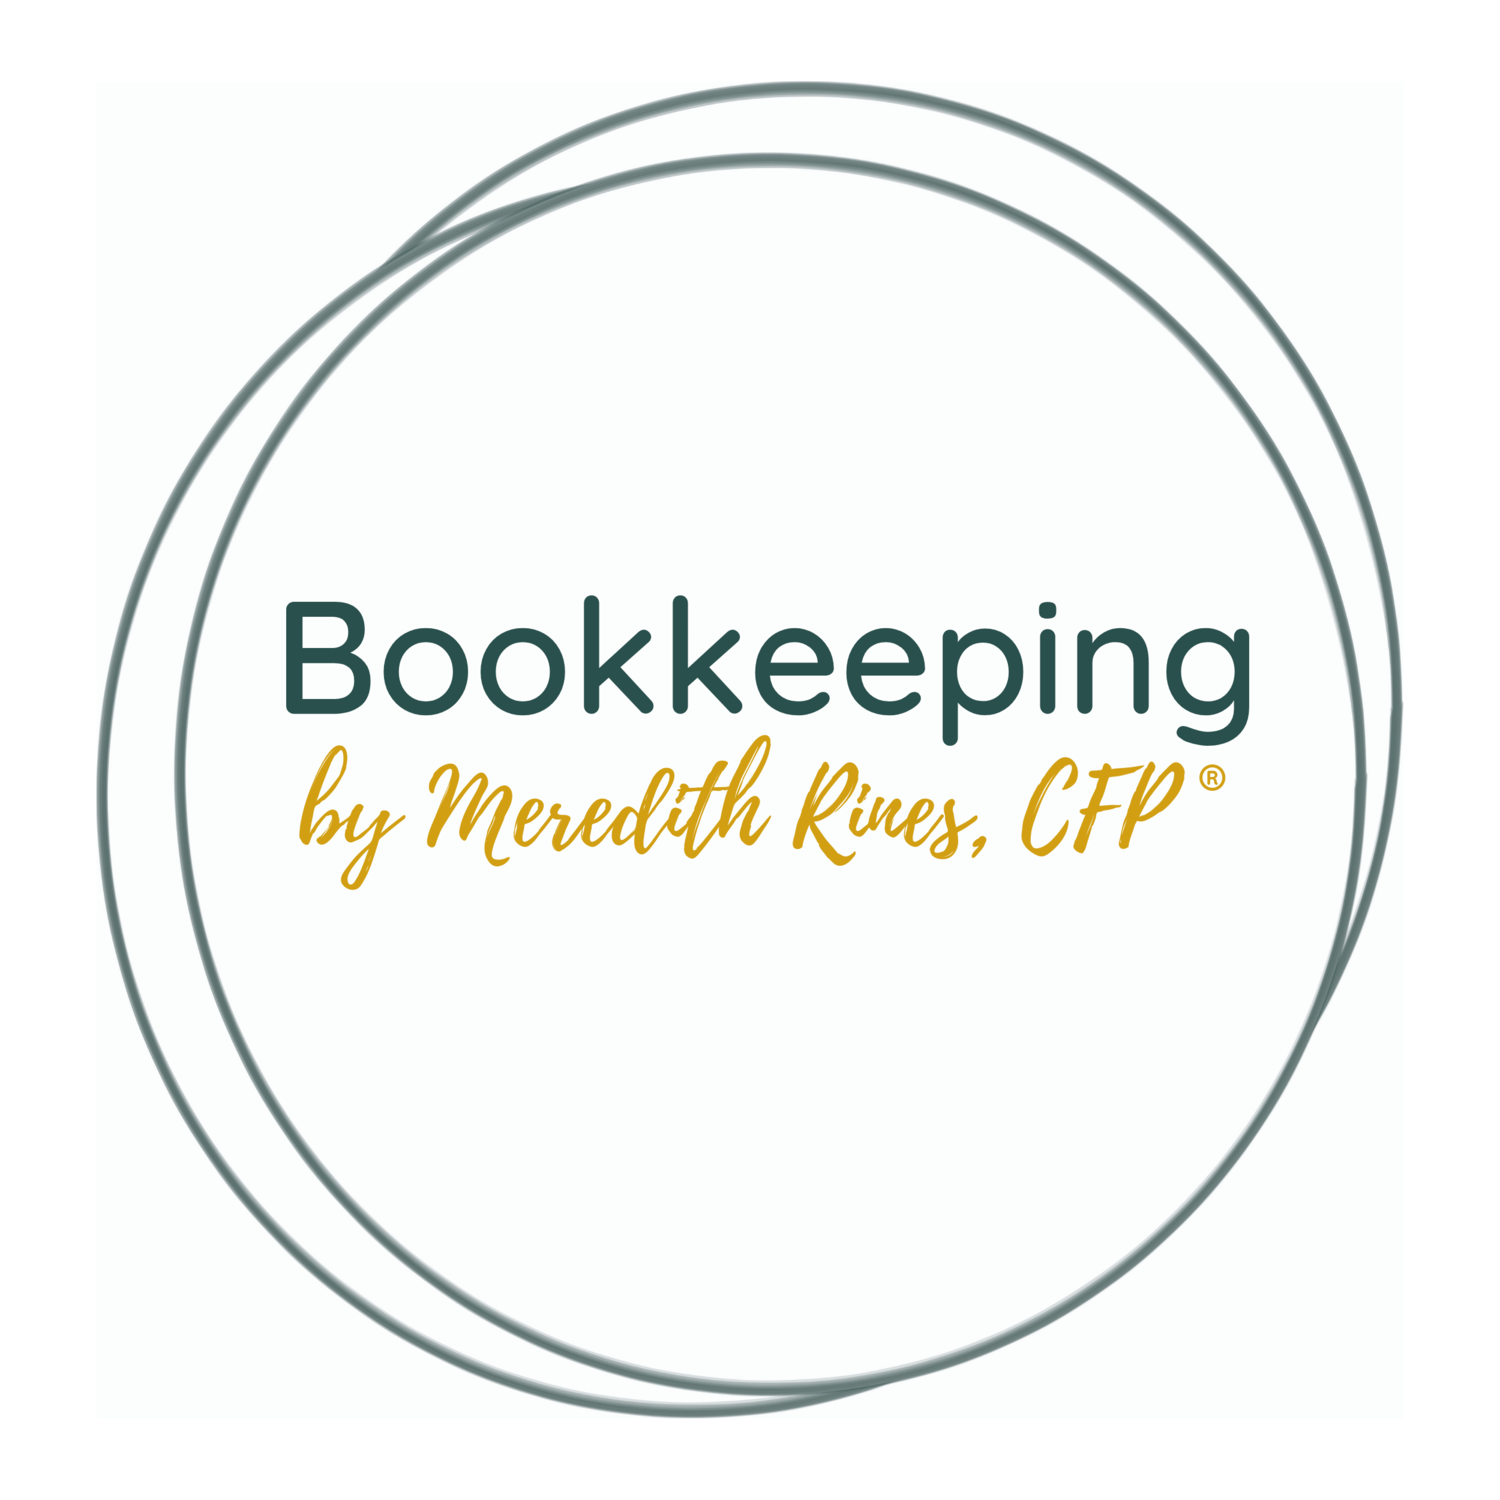 Bookkeeping by Meredith Rines, CFP® | Helping Creative Business Owners Make Sense of Their Finances